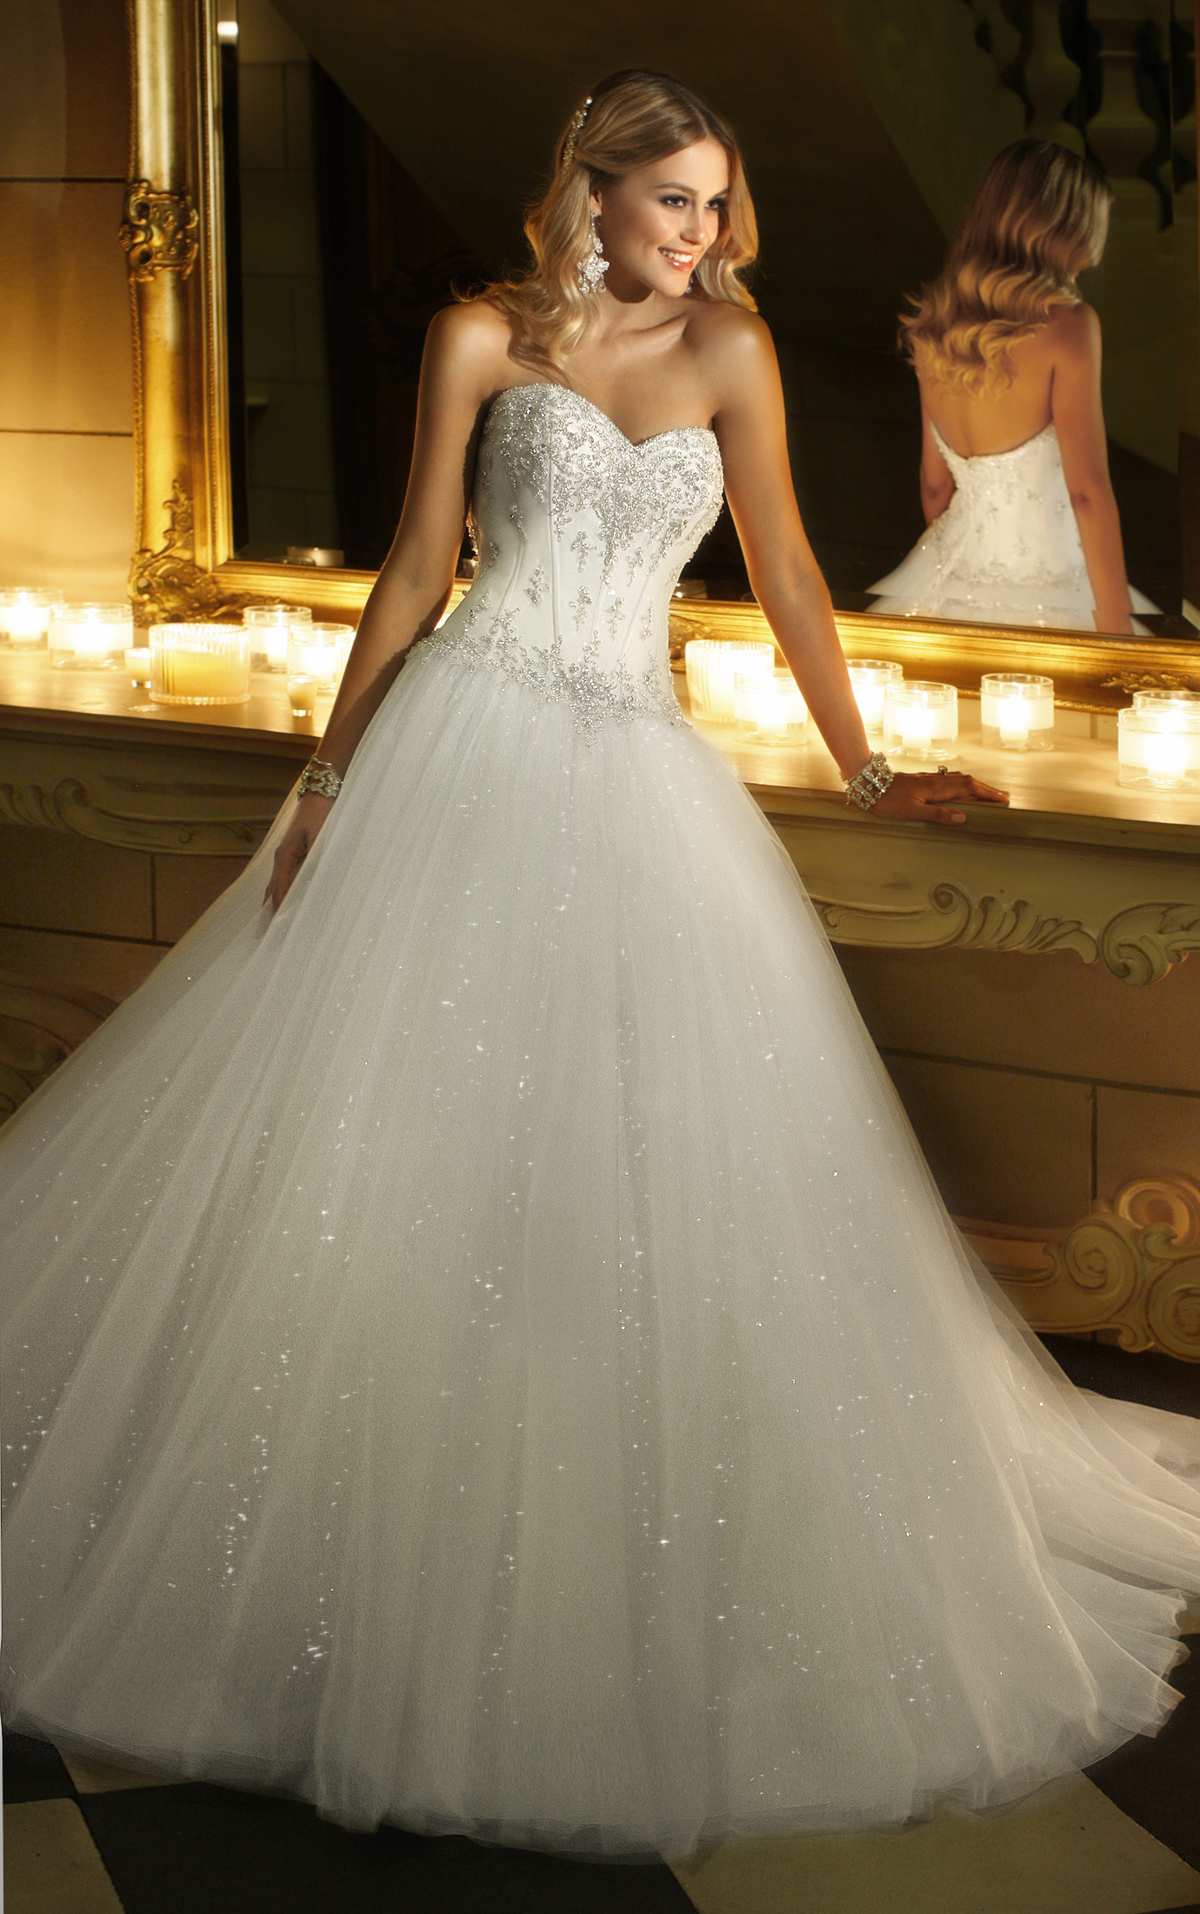 The best gowns from the most in demand wedding dress designers the best gowns from the most in demand wedding dress designers part ii ombrellifo Gallery